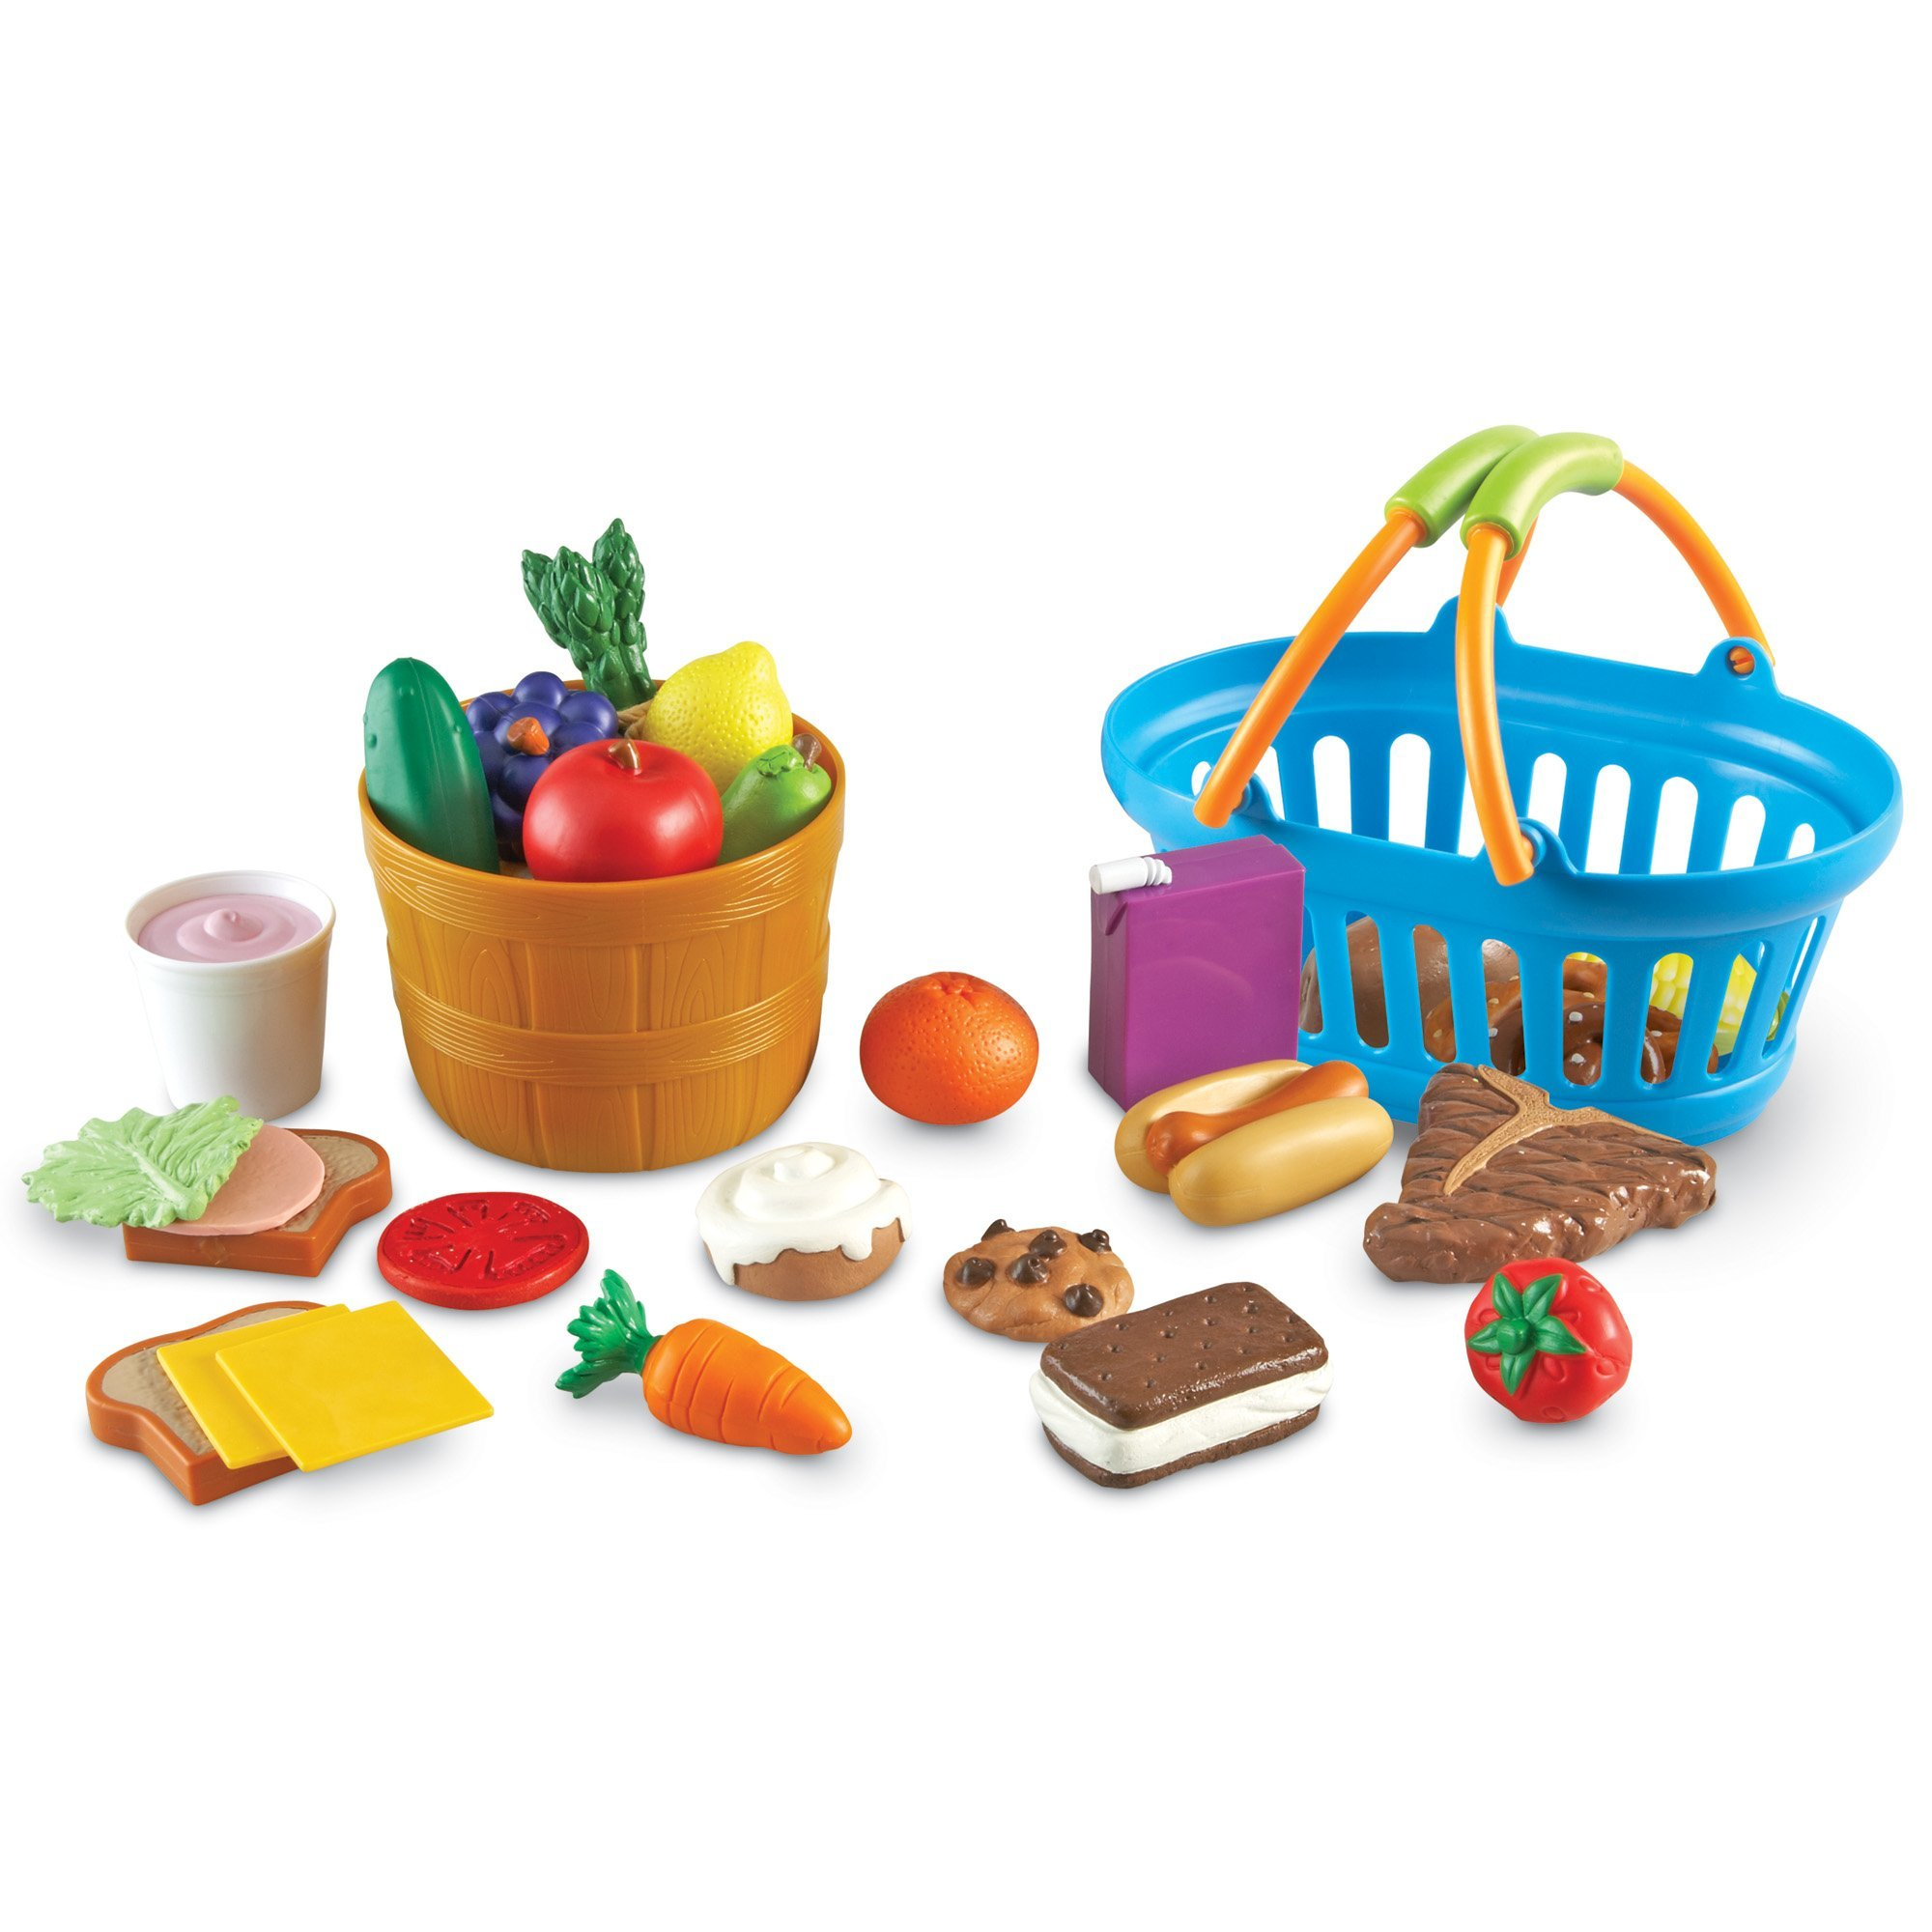 Learning Resources New Sprouts Deluxe Market Set, Play Food, Grocery Play Toy, 32 Piece Set, Ages 2+ by Learning Resources